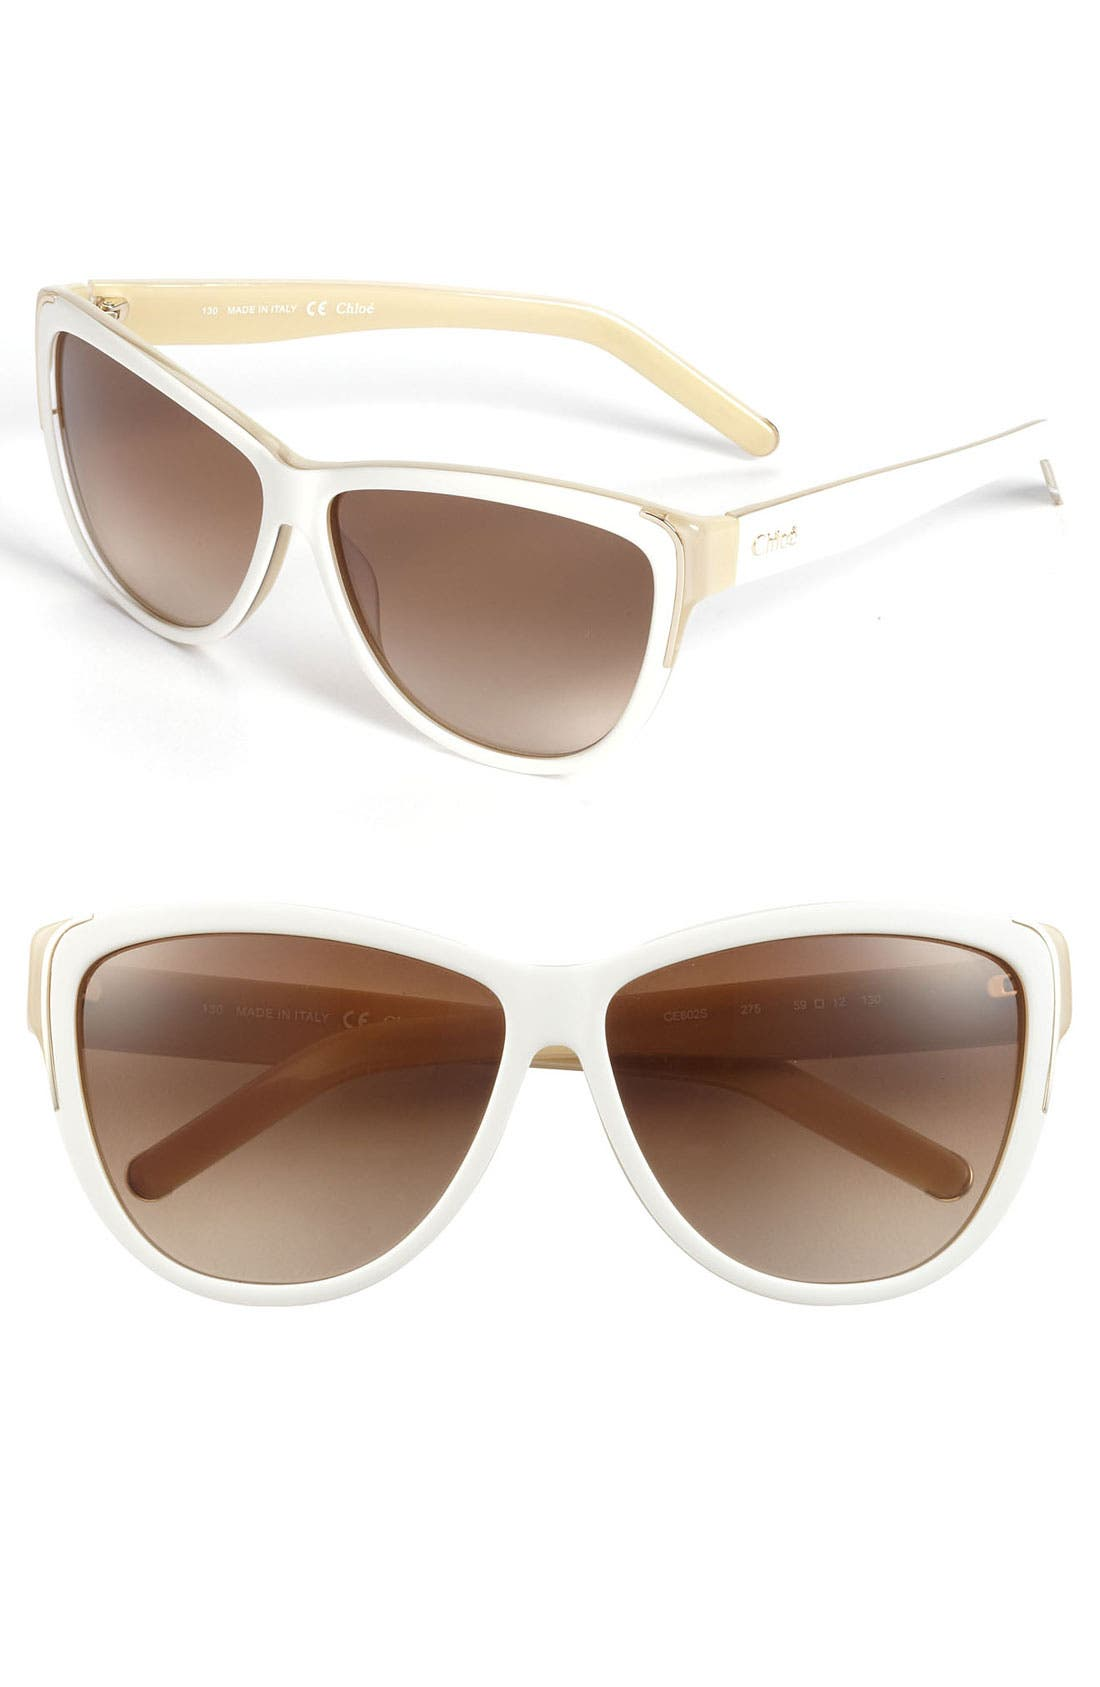 Main Image - Chloé 59mm Oversized Sunglasses